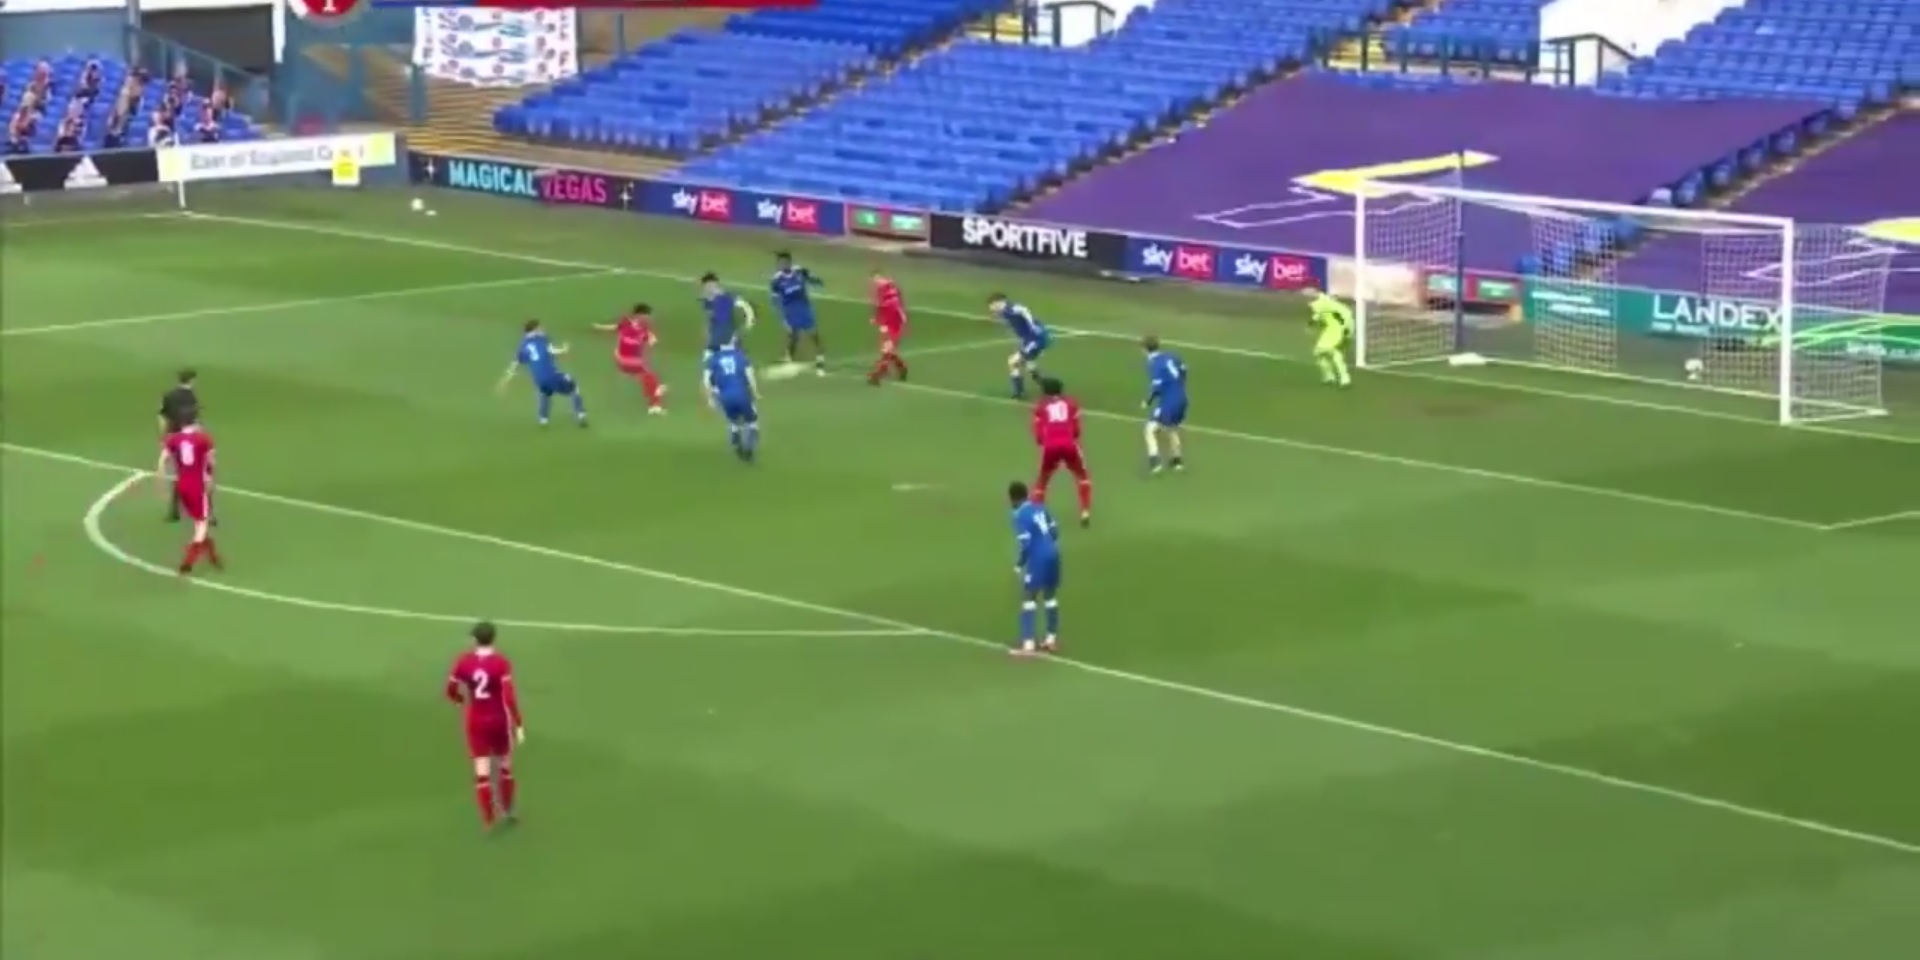 (Video) Liverpool starlet shows off dancing feet in build-up to brilliant goal